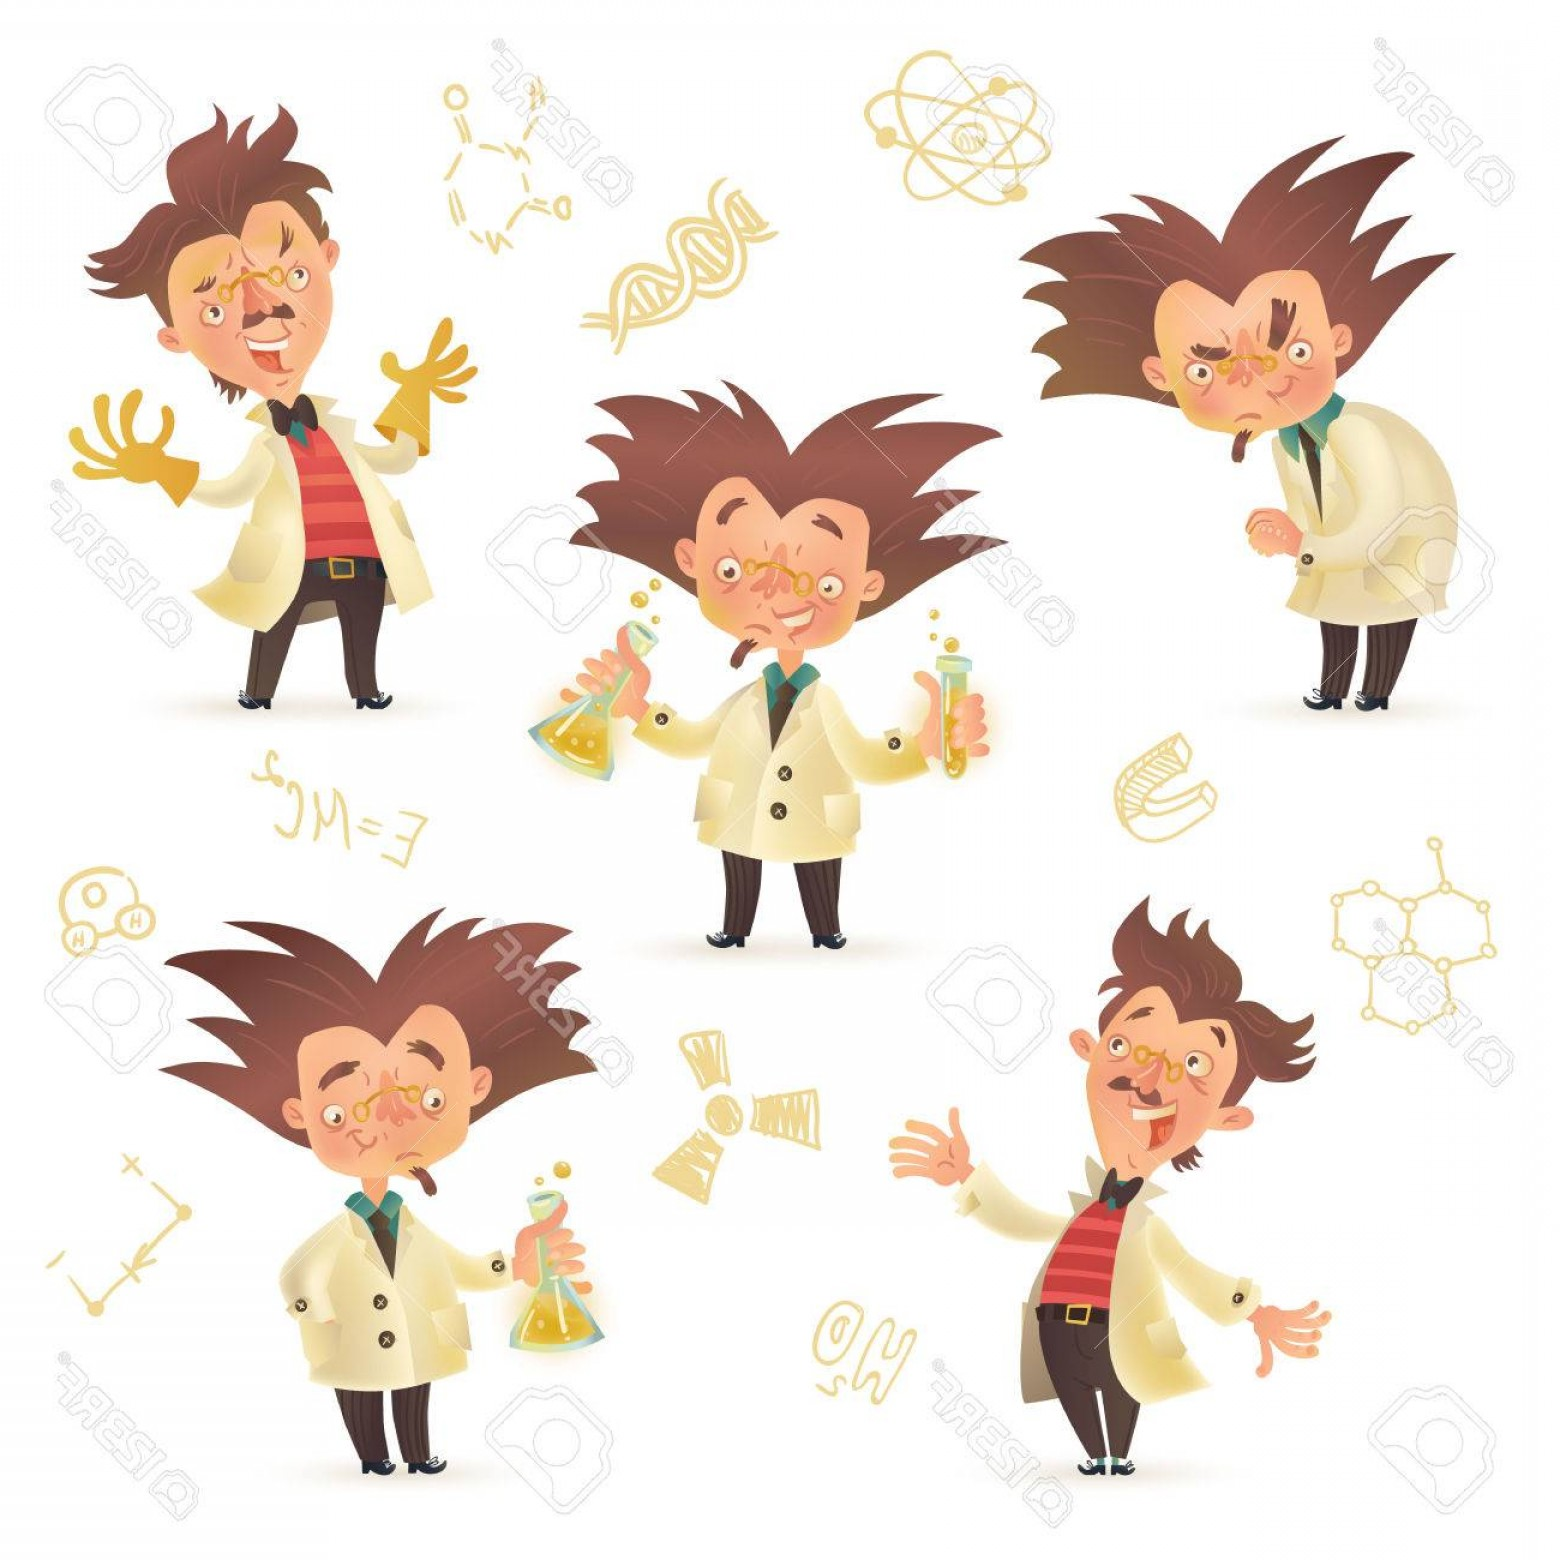 Lab Coat Cartoon Vector: Photostock Vector Stereotypic Bushy Haired Mad Professor Wearing Lab Coat In Various Poses Cartoon Illustration Isolat